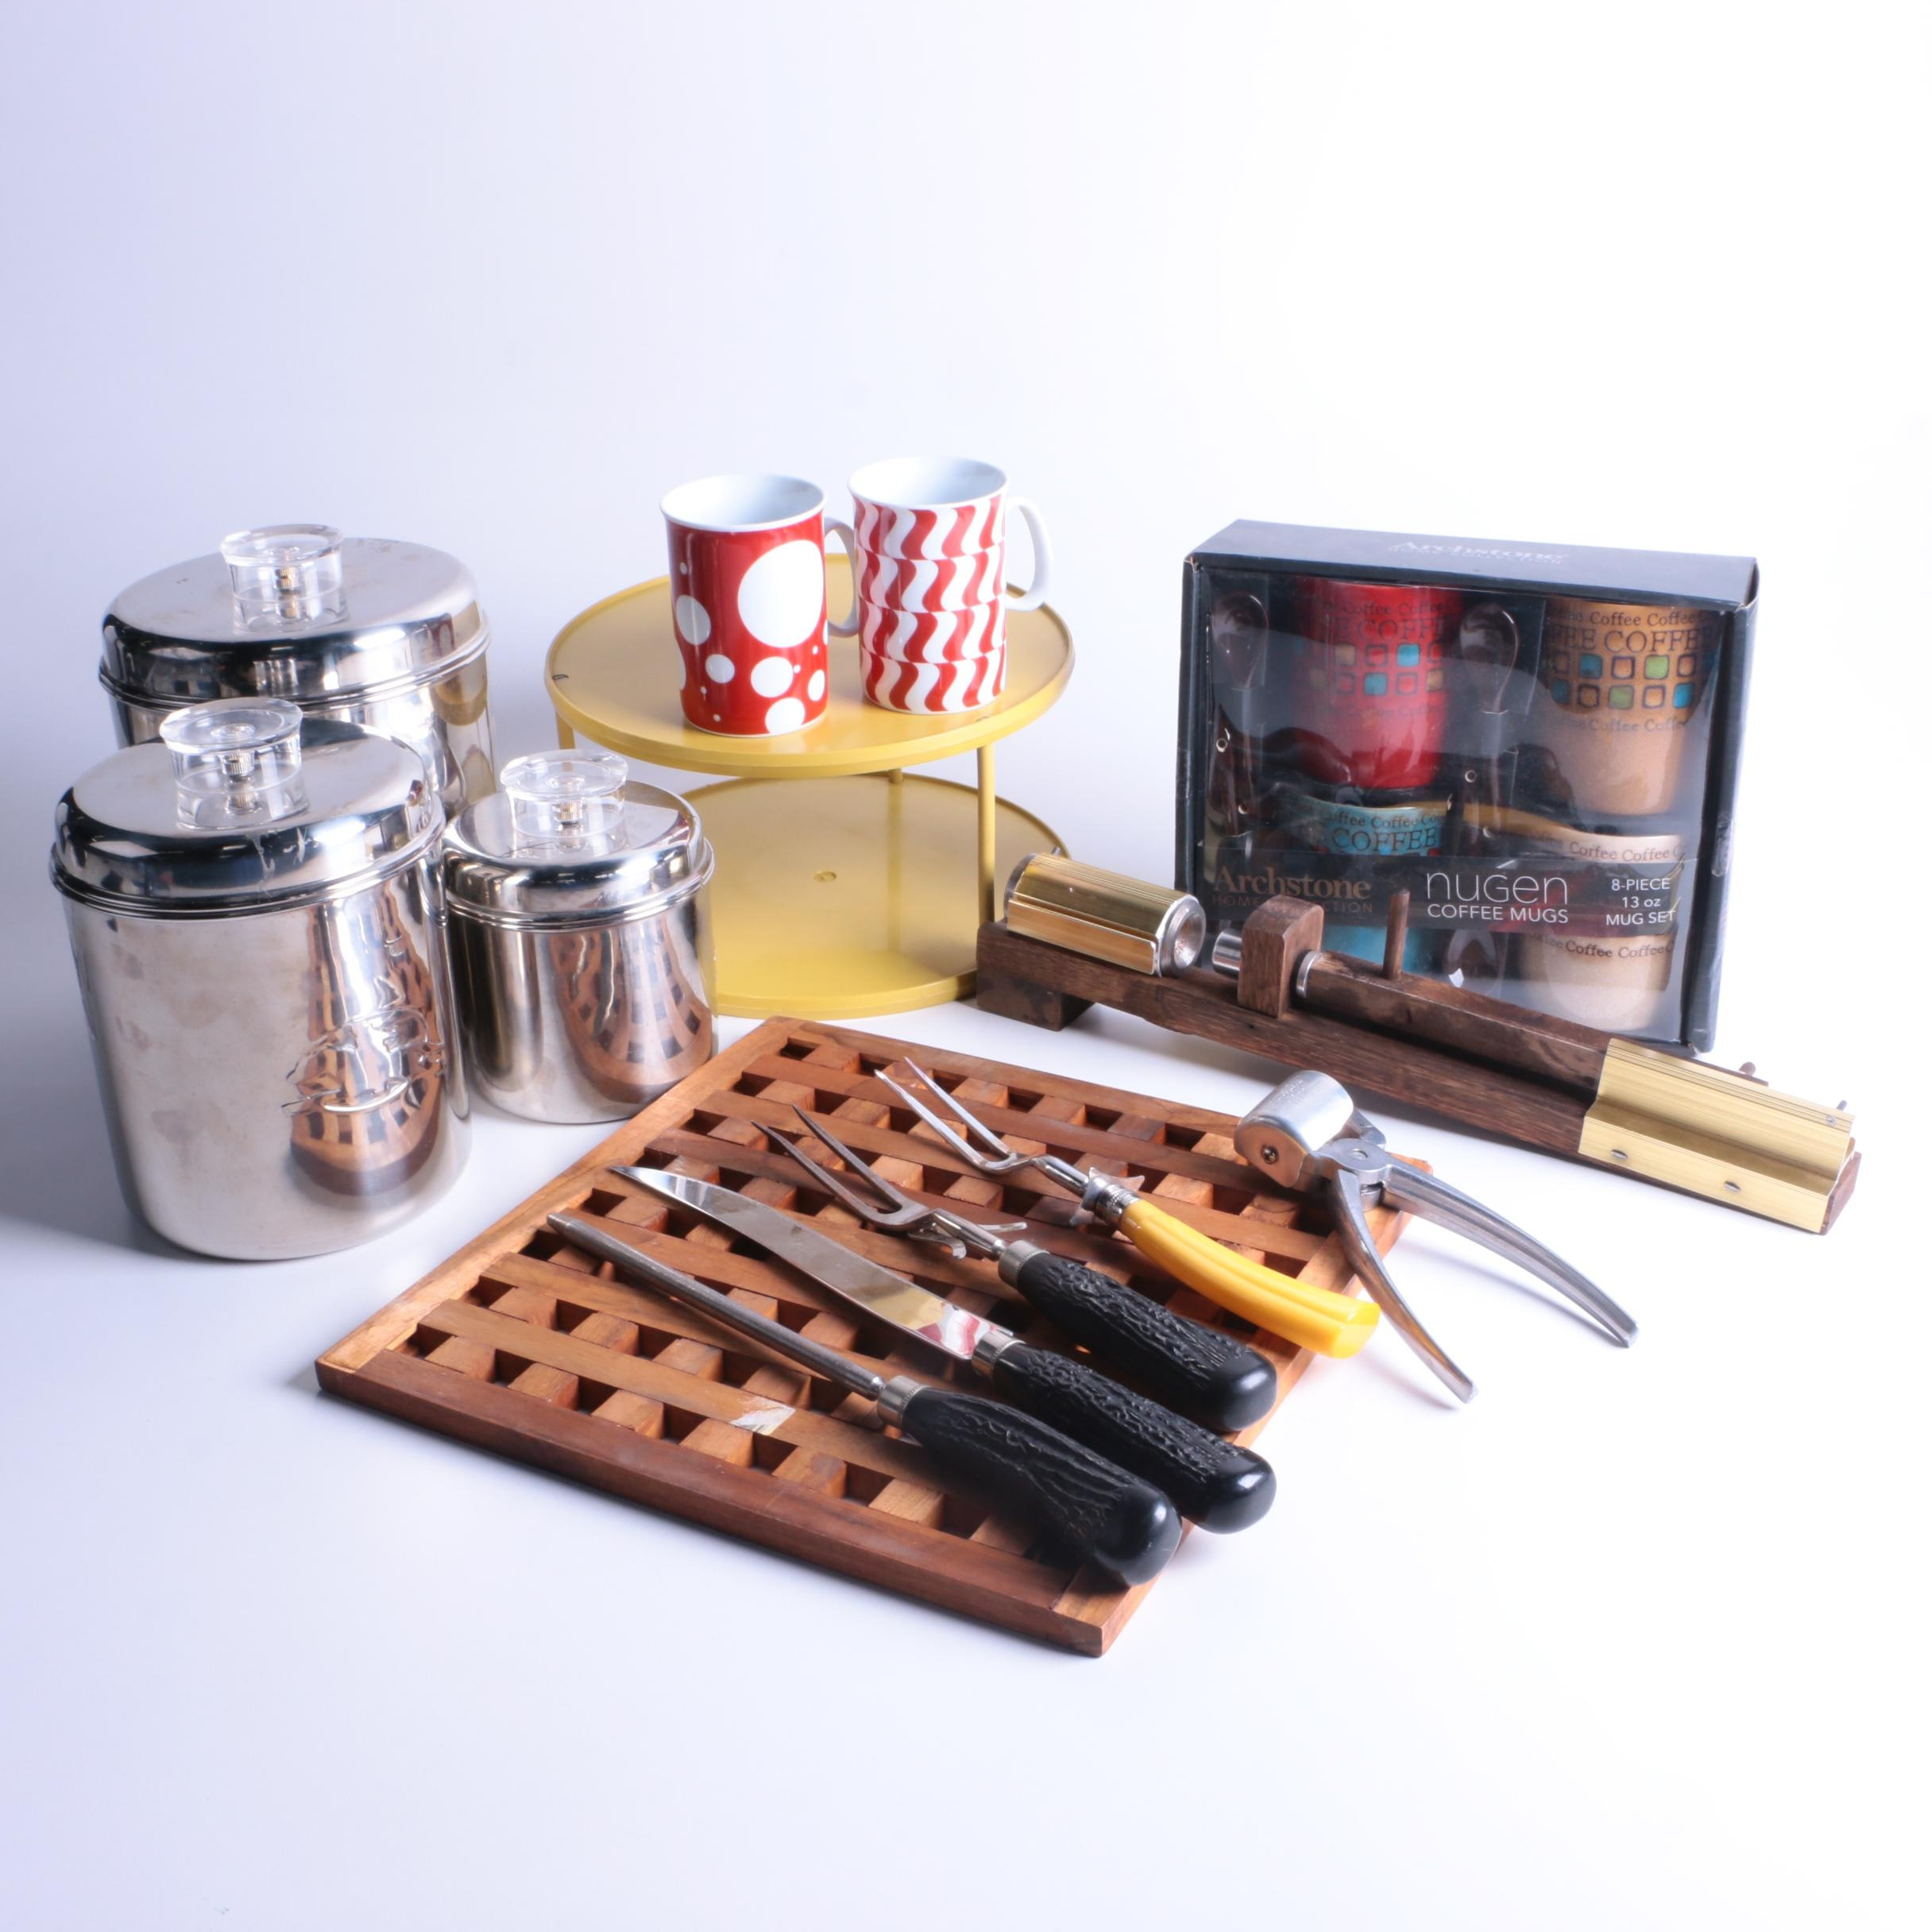 Kitchenware Including Vintage Canisters, Nugen Mugs and More